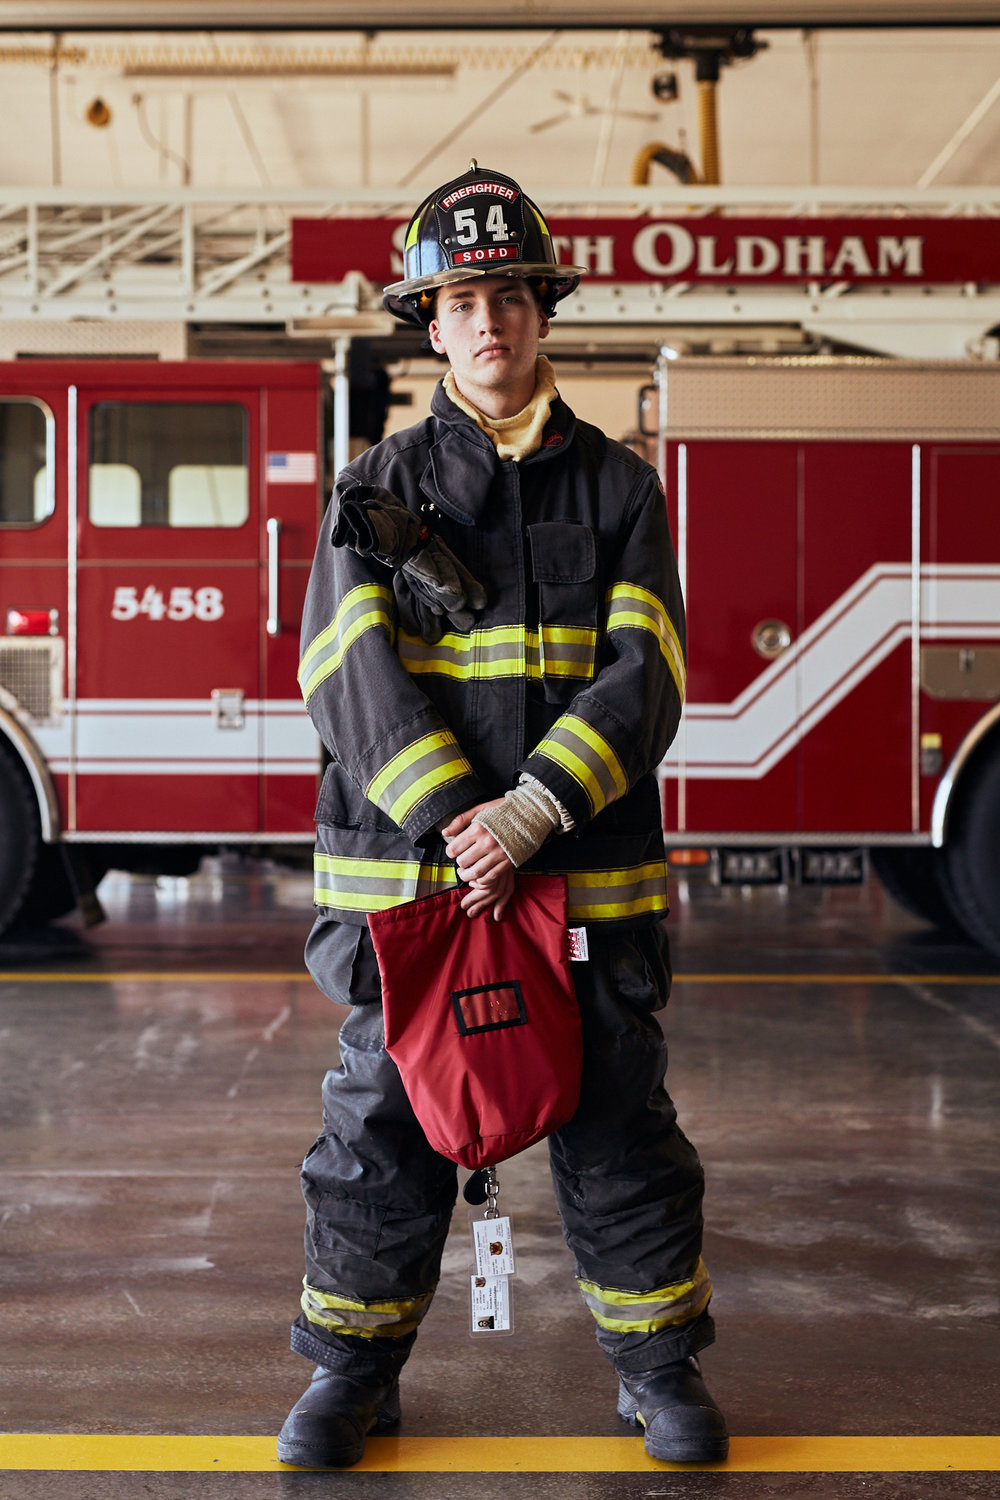 south_oldham_fire_department_20171202_Ryan_Noltemeyer_31_WEB.jpg